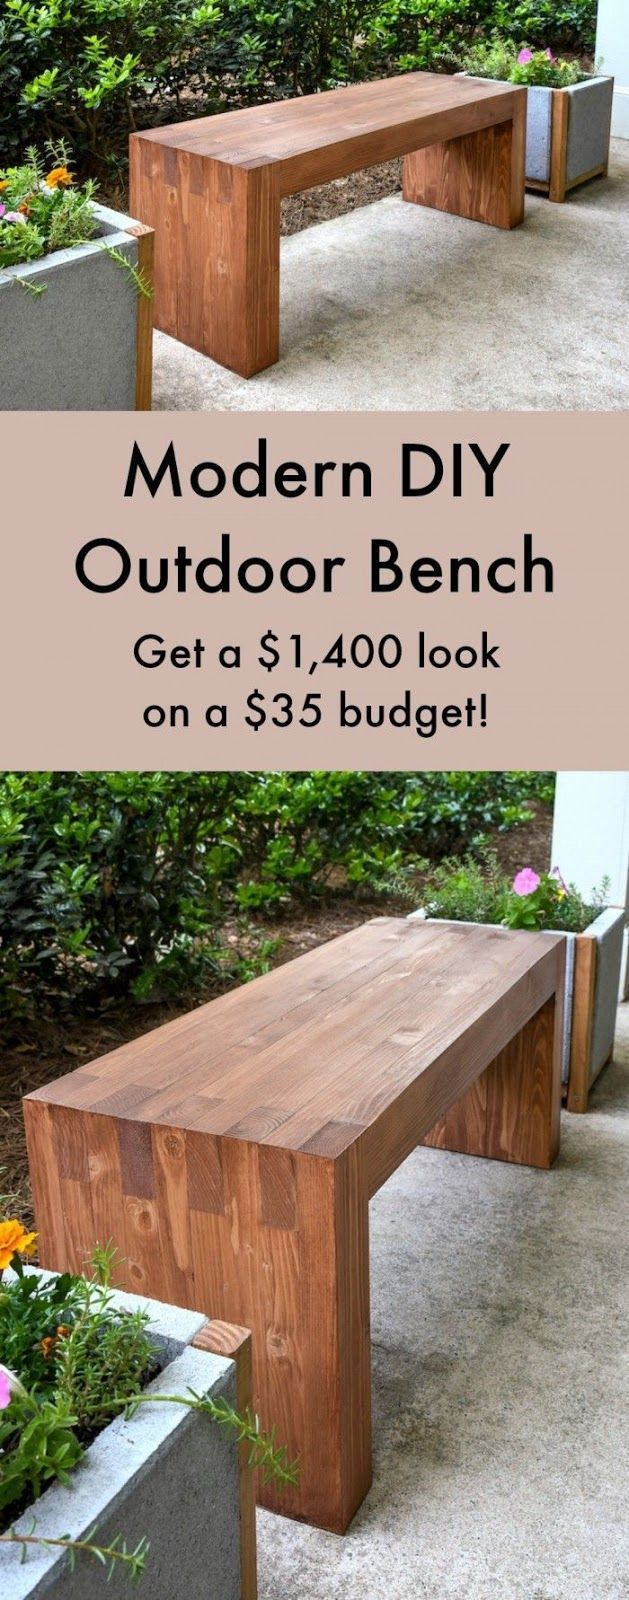 Outdoor decor diy - This Easy Modern Diy Outdoor Bench Was Made With 35 Of Materials And Uses No